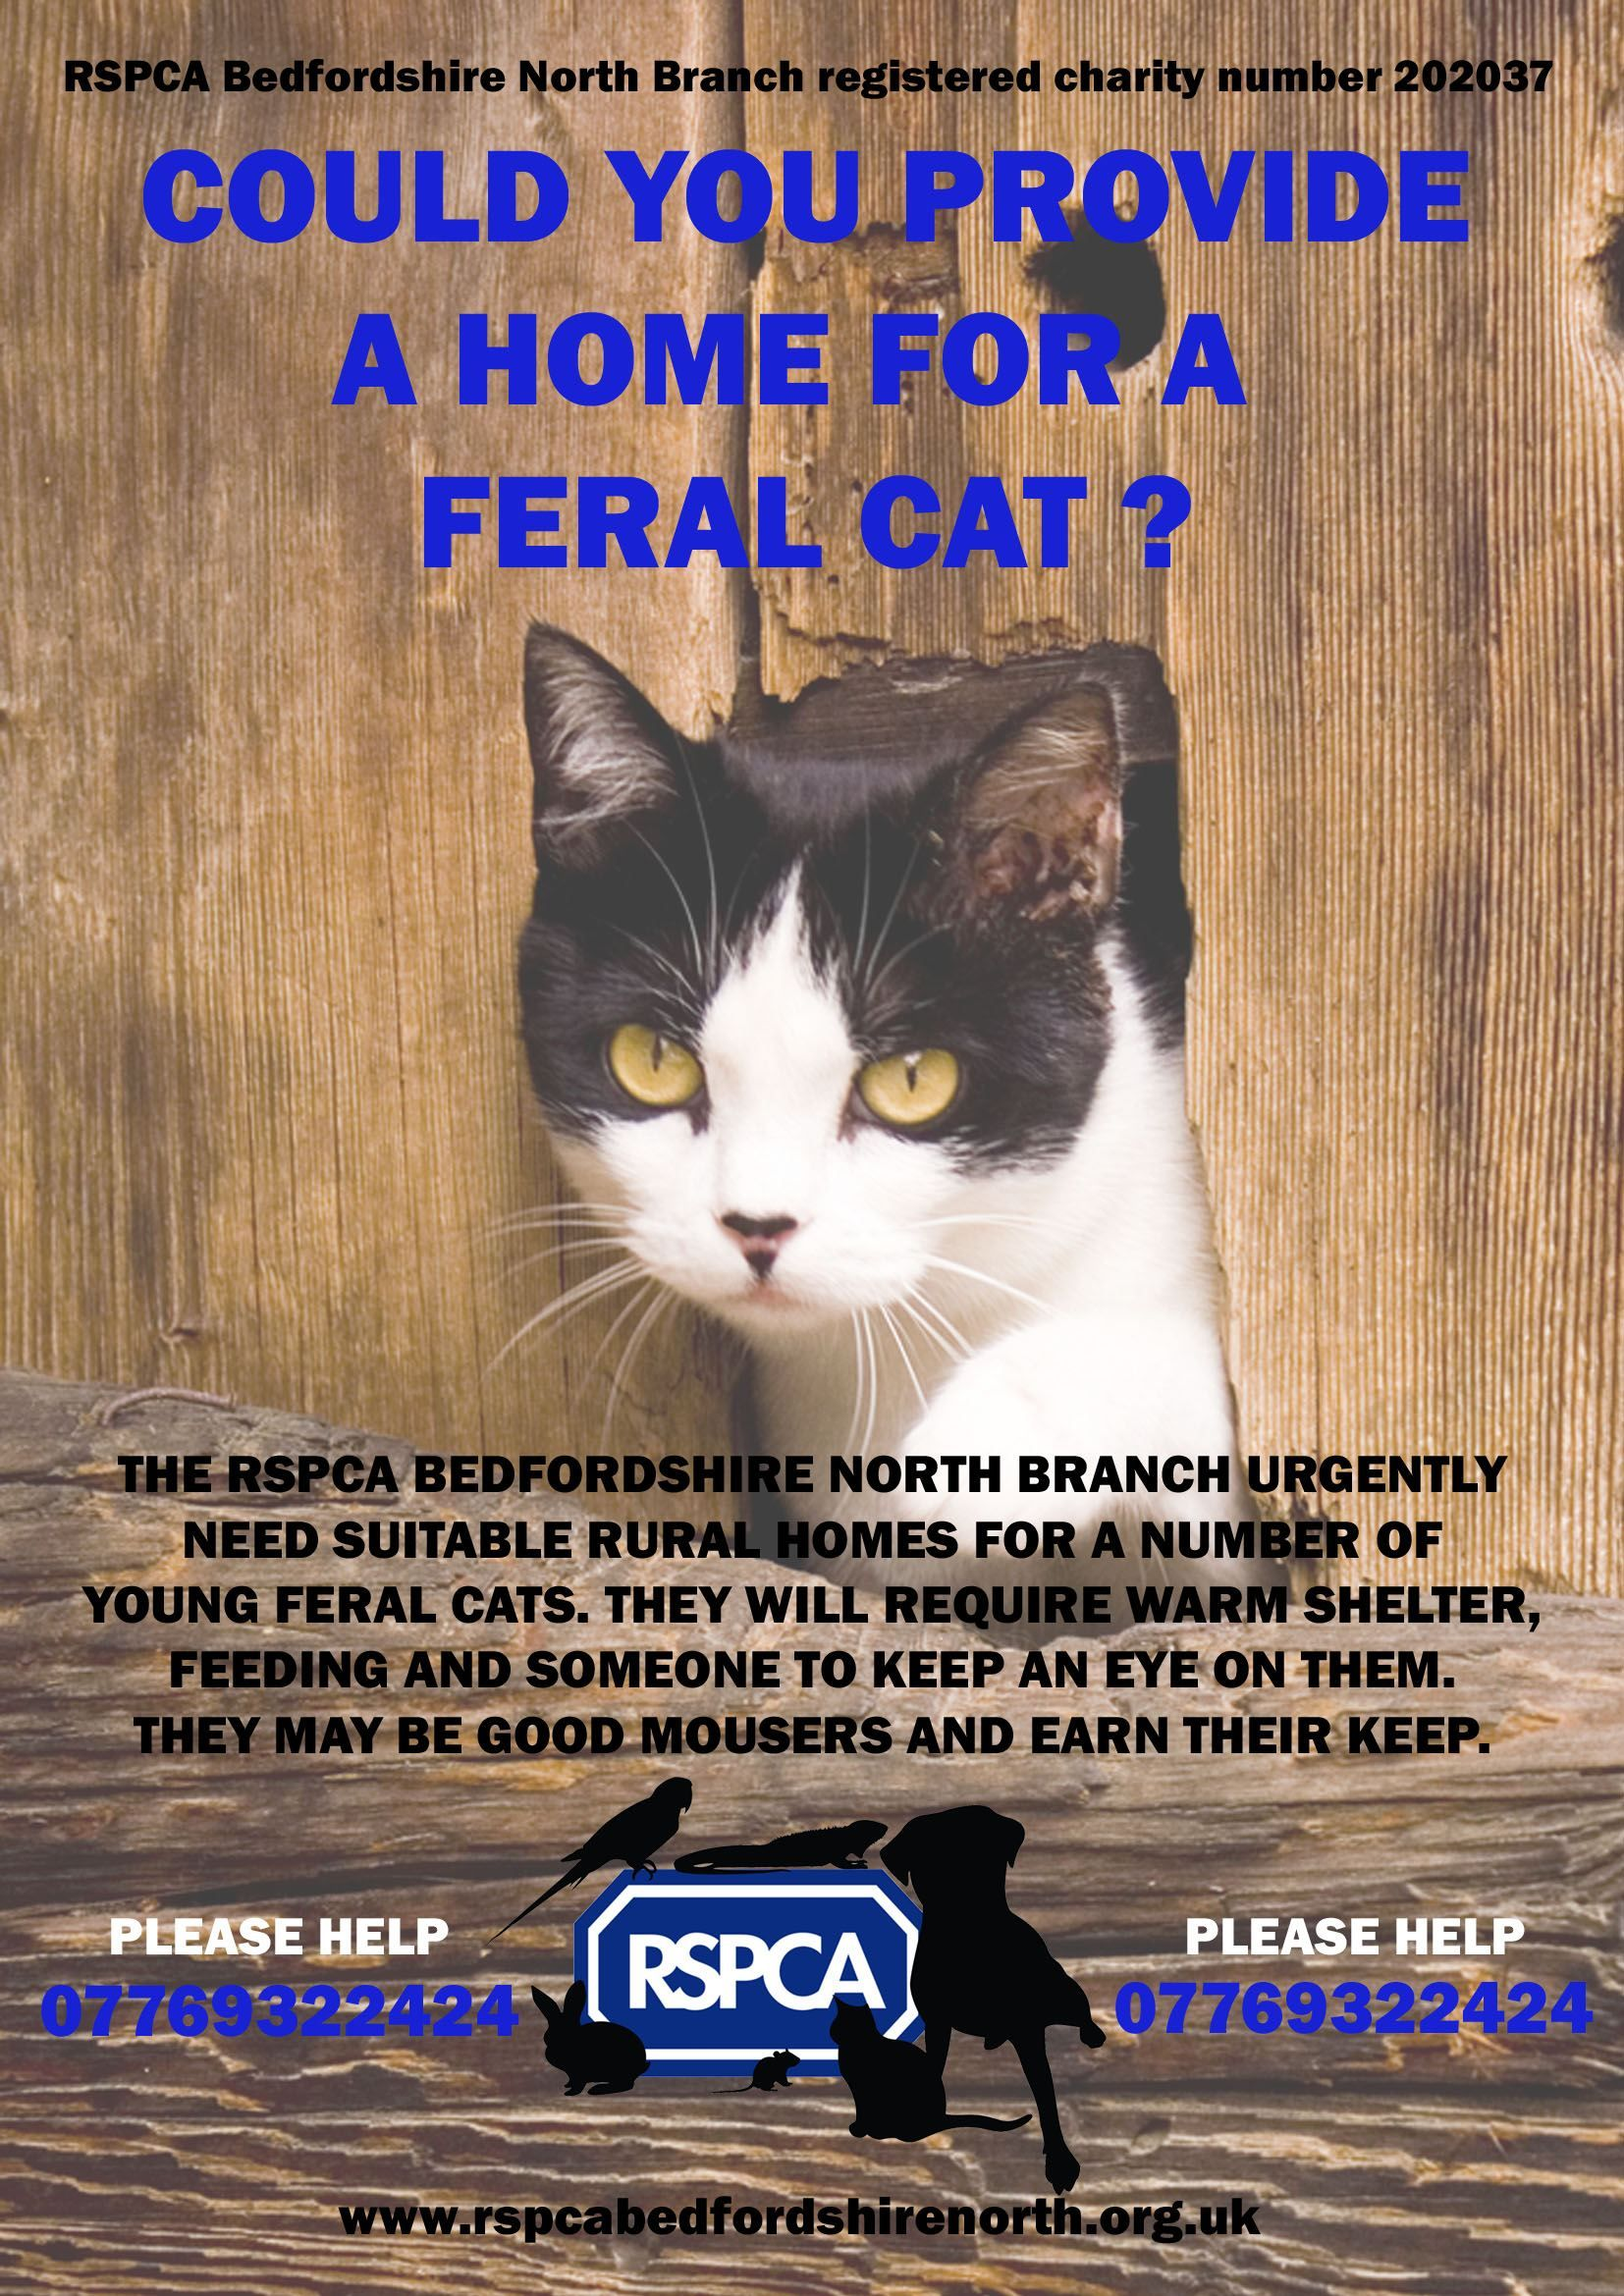 Http Www Rspca Bedfordshirenorth Org Uk Rspca Images Rspca News Feral Cats Poster Jpg Feral Cats Cat Posters Cats